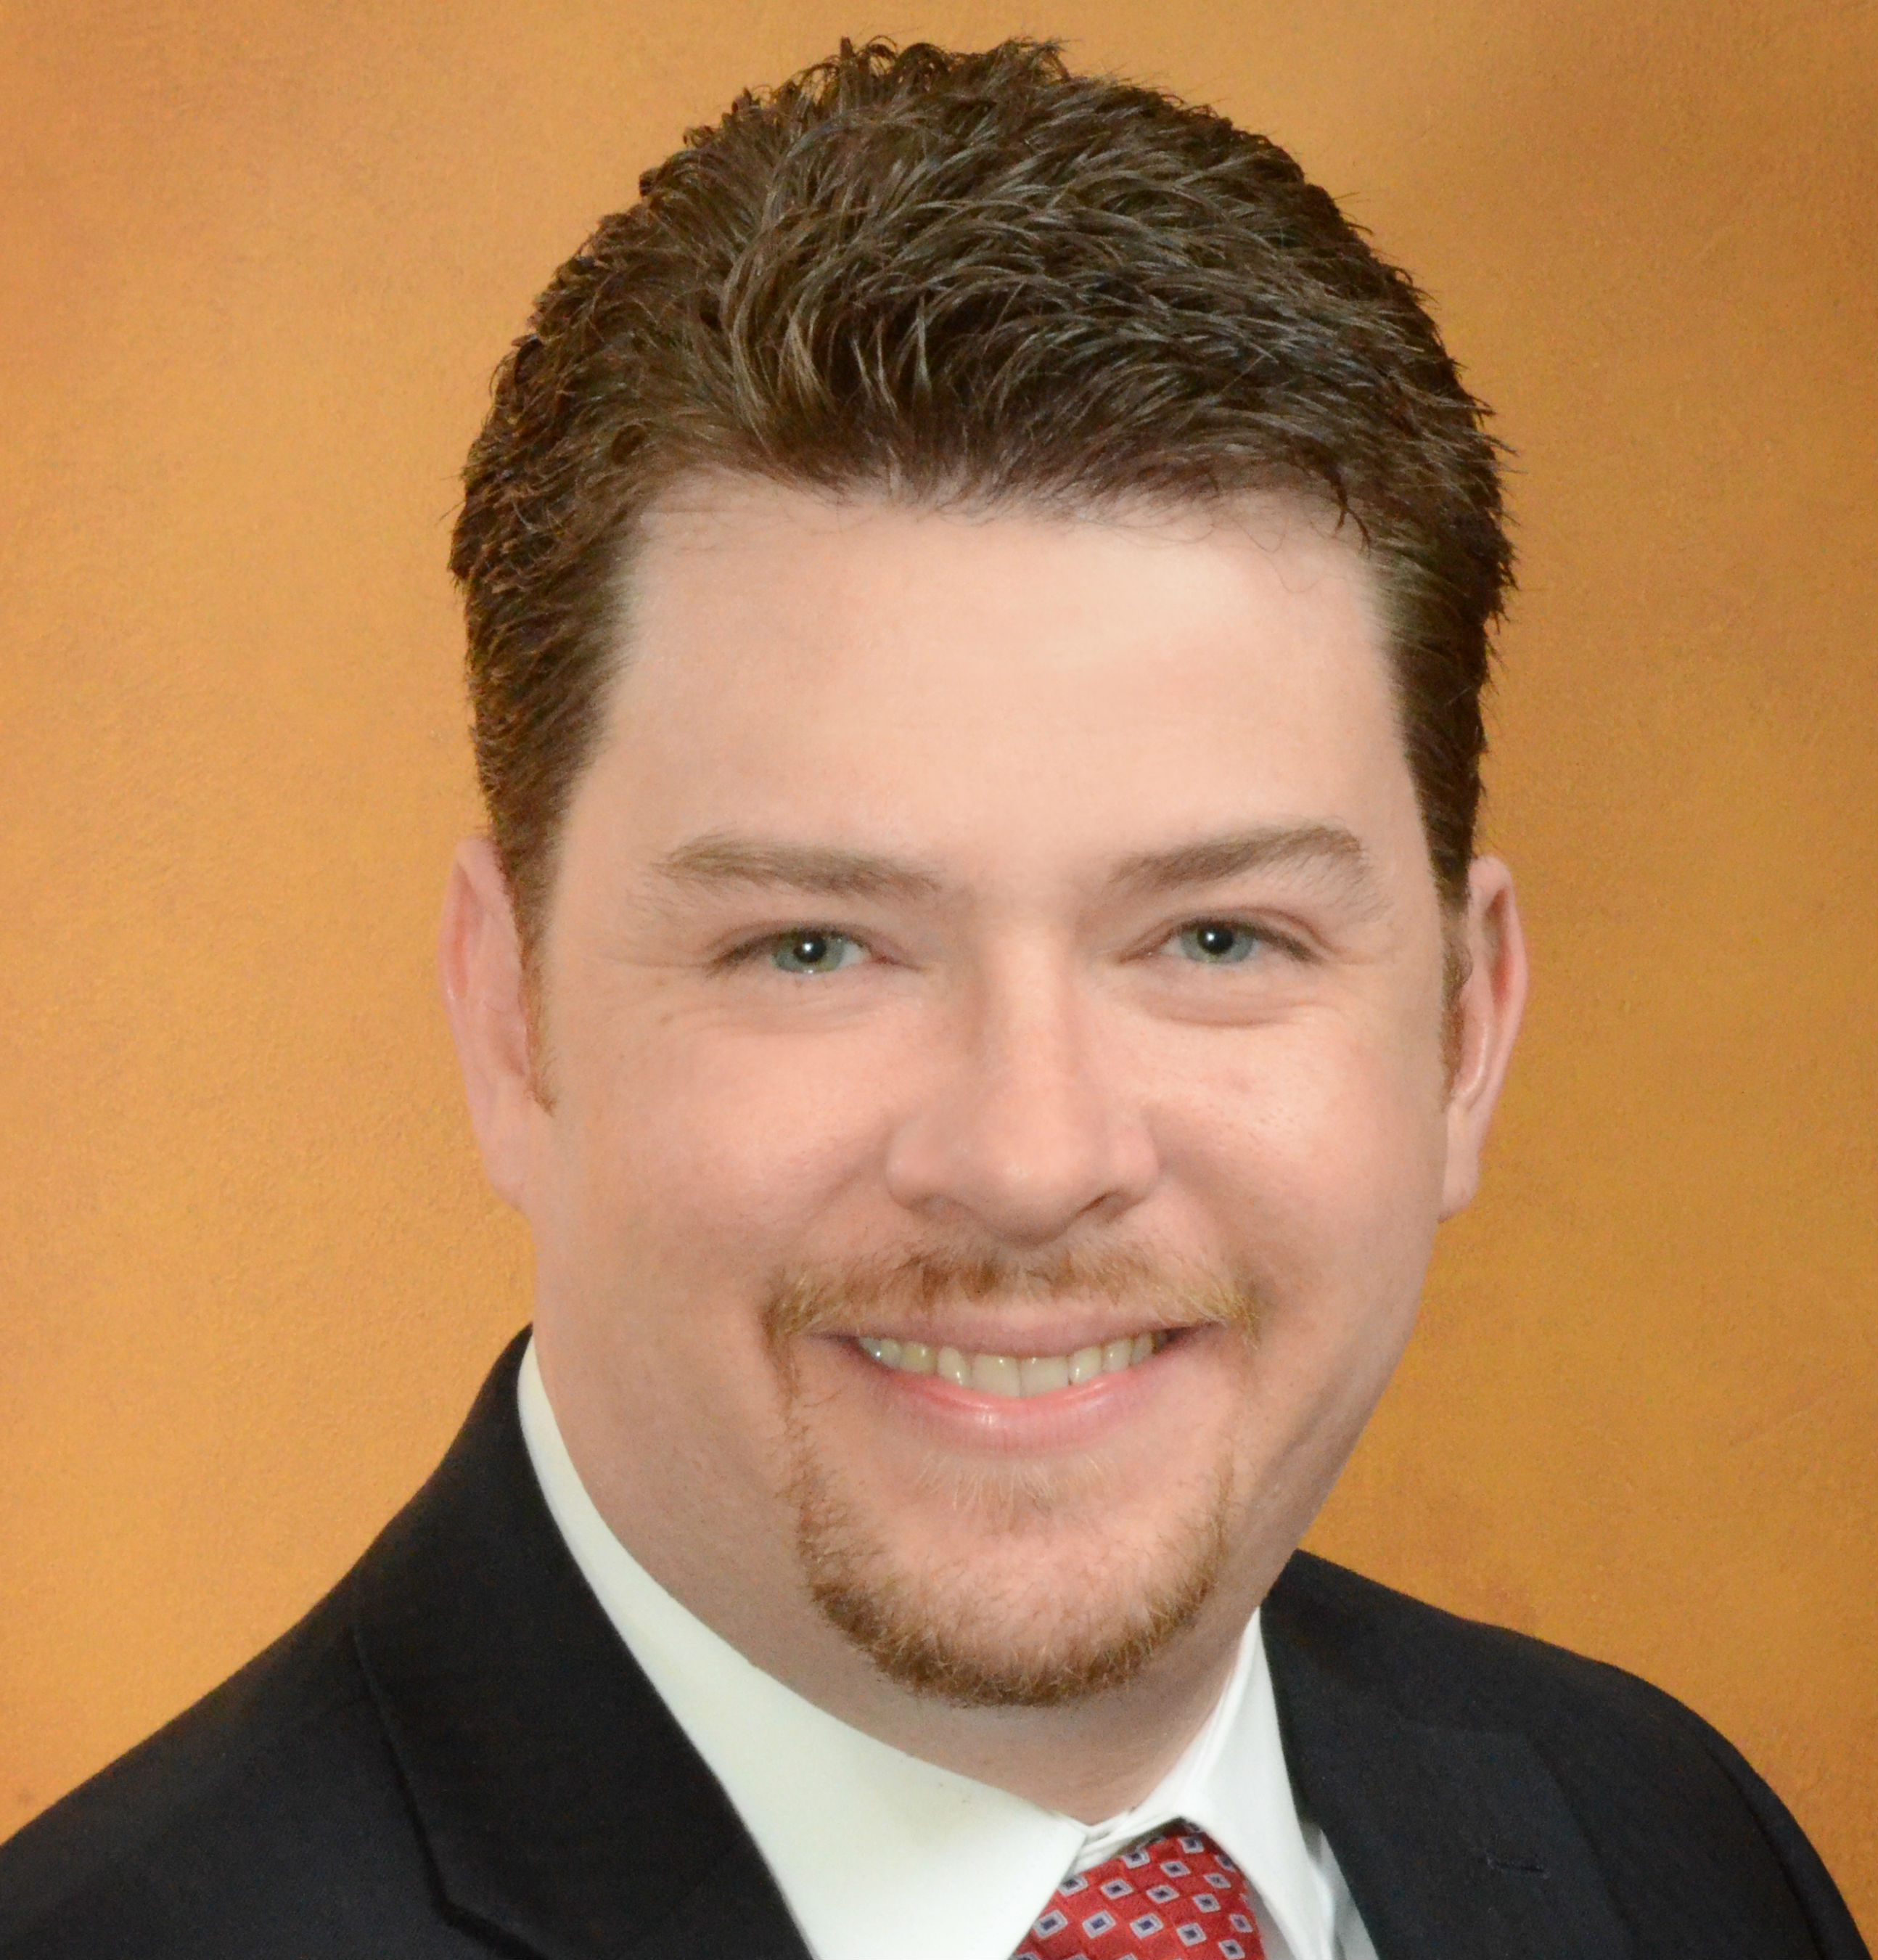 Chris Rondinelli, financial advisor Lower Burrell PA